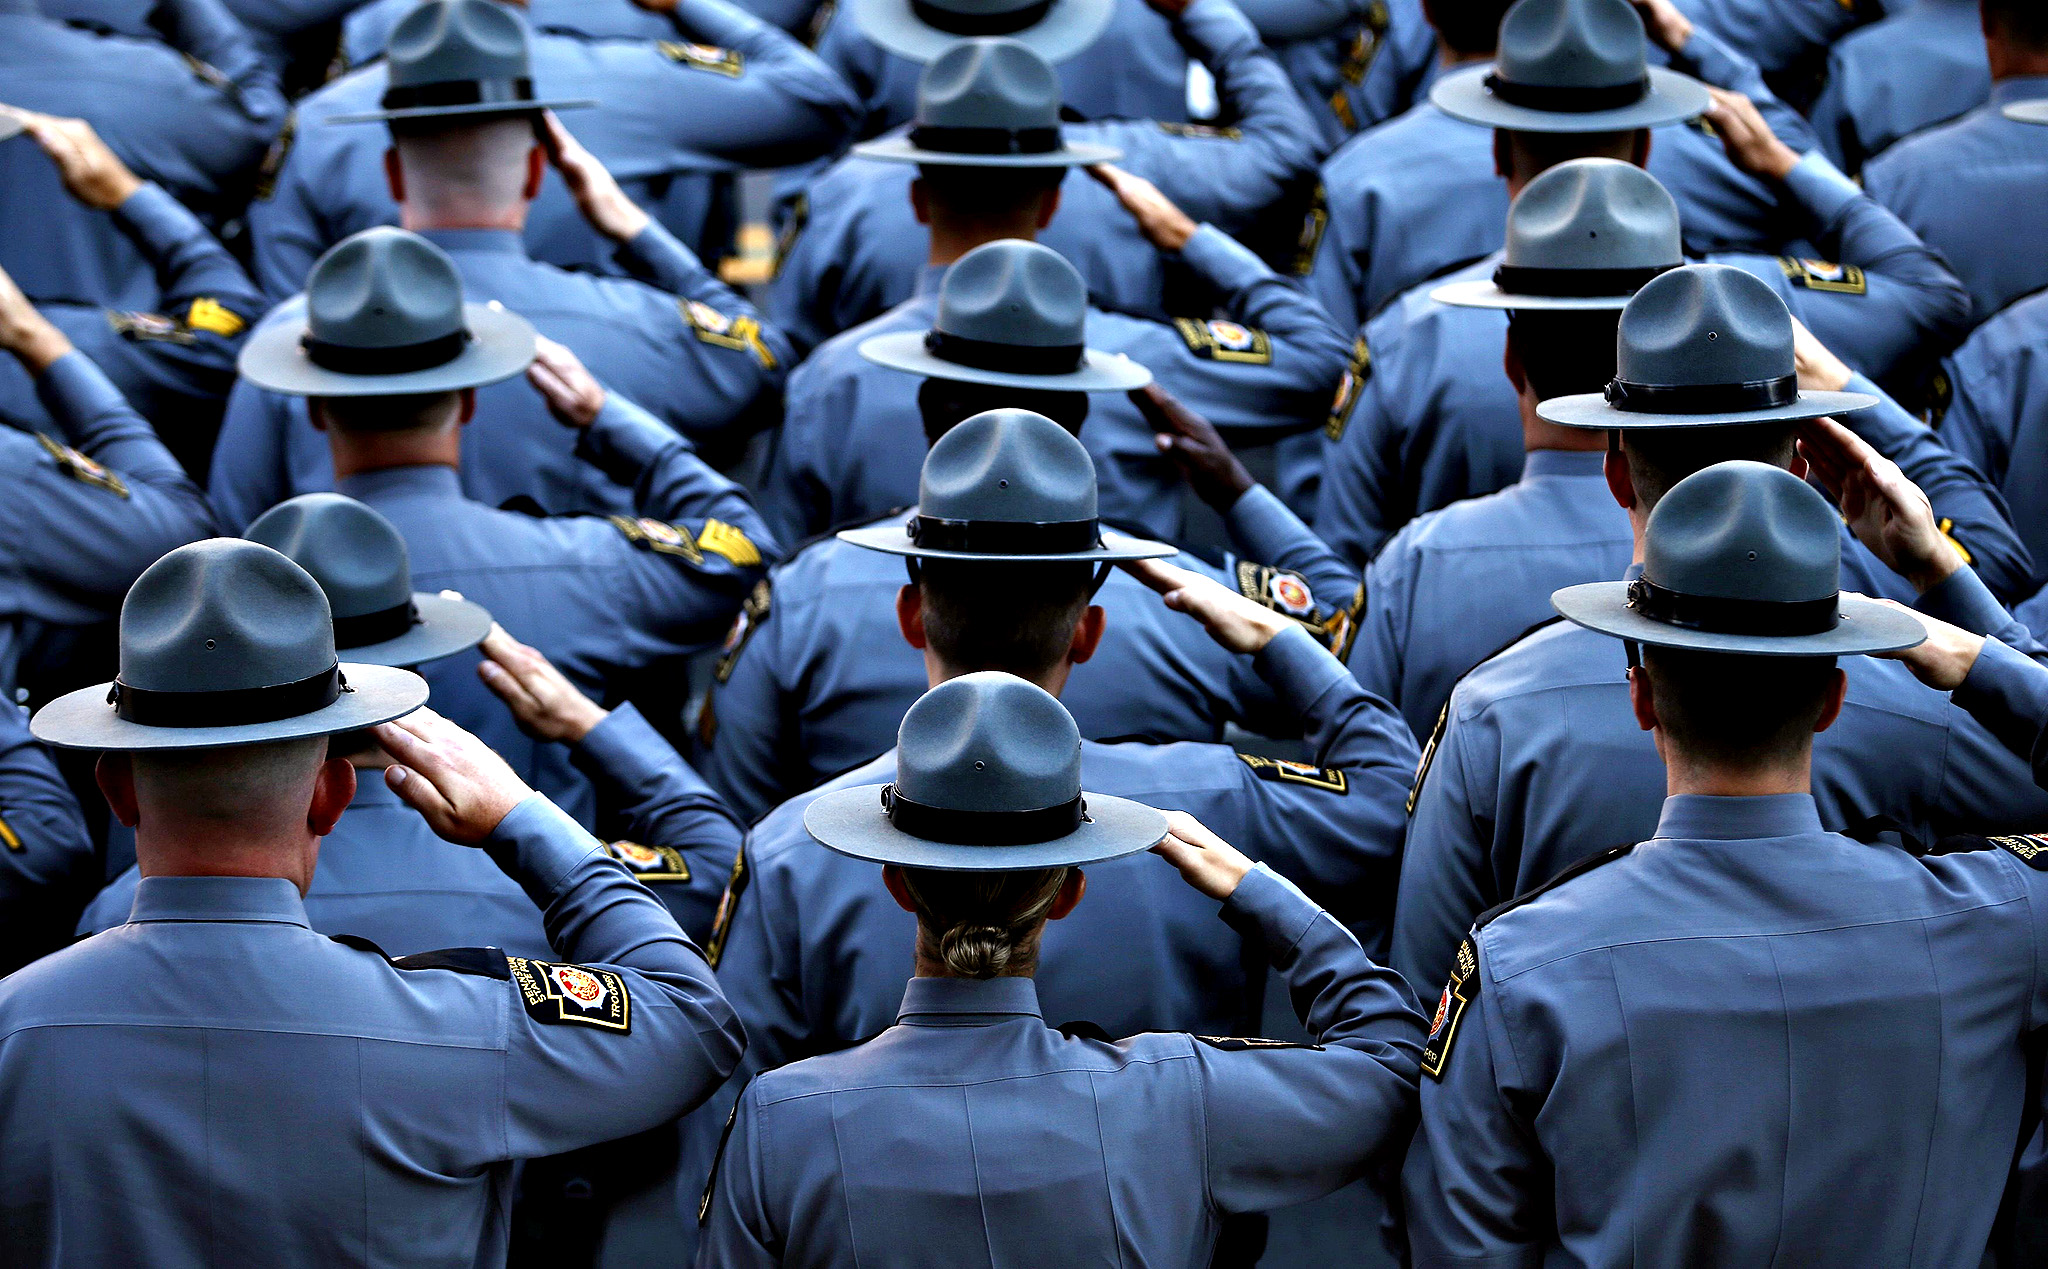 Pennsylvania State Police salute as they line the streets outside St. Peters' Cathedral in Scranton, as the casket carrying slain Pennsylvania State Police Trooper Corporal Bryon Dickson is carried into the Cathedral for his funeral service...Pennsylvania State Police salute as they line the streets outside St. Peters' Cathedral in Scranton, Pennsylvania September 18, 2014, as the casket carrying slain Pennsylvania State Police Trooper Corporal Bryon Dickson, 38 is carried into the Cathedral for his funeral service. The survivalist suspected of the ambush attack last week that killed Dickson and seriously wounded another is a member of a Cold War re-enactment group, state police said on Wednesday.